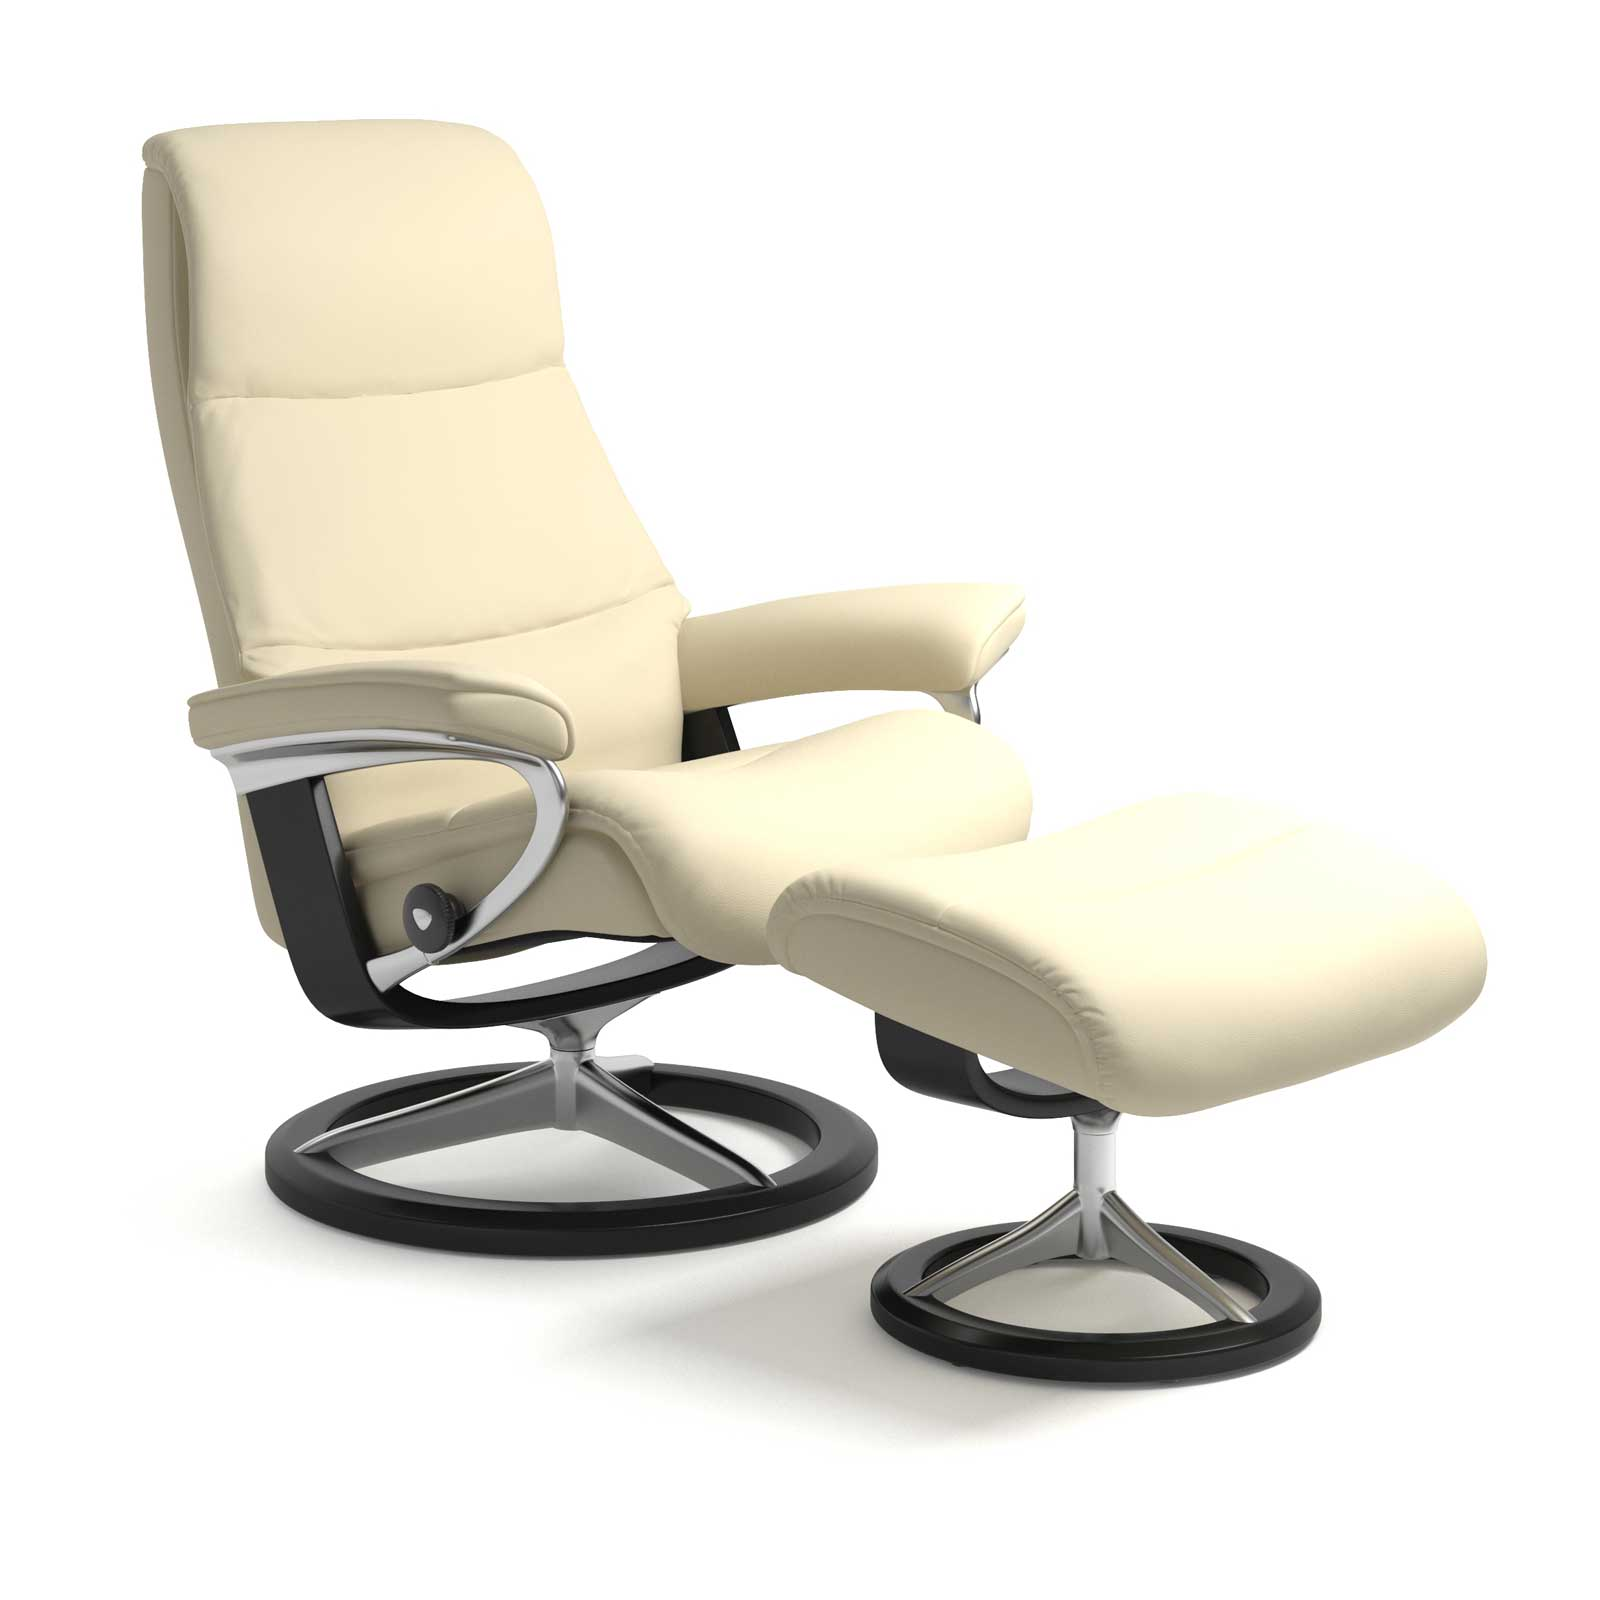 Stressless Wing Signature Sessel Stressless Sessel View Signature Paloma Vanilla Mit Hocker